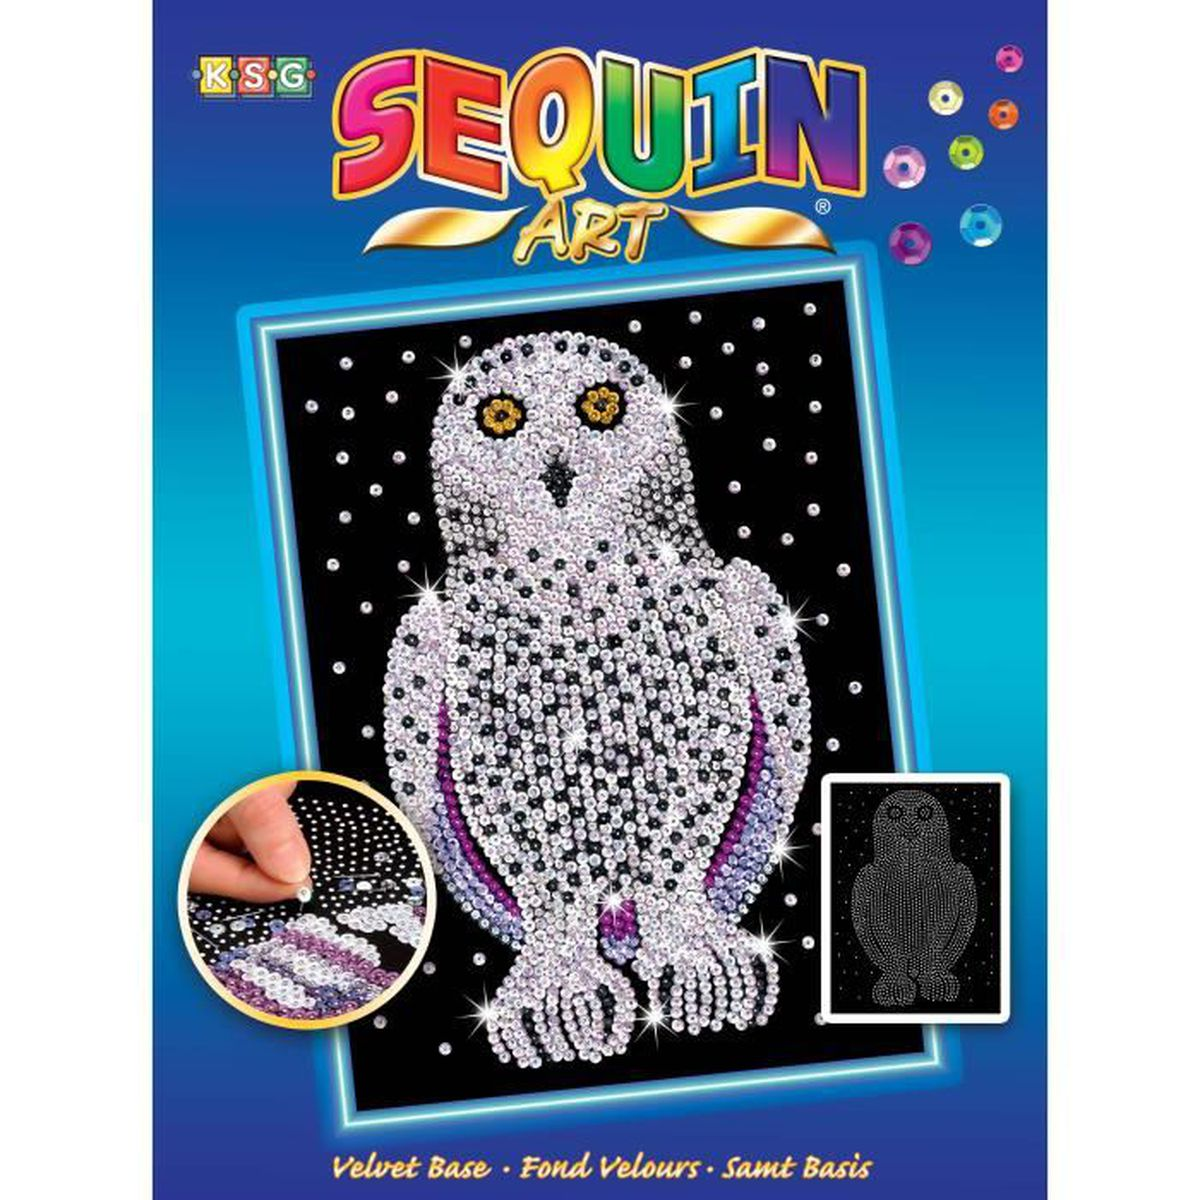 Tableau sequin art harfang des neiges sequin art for Tableau en sequin